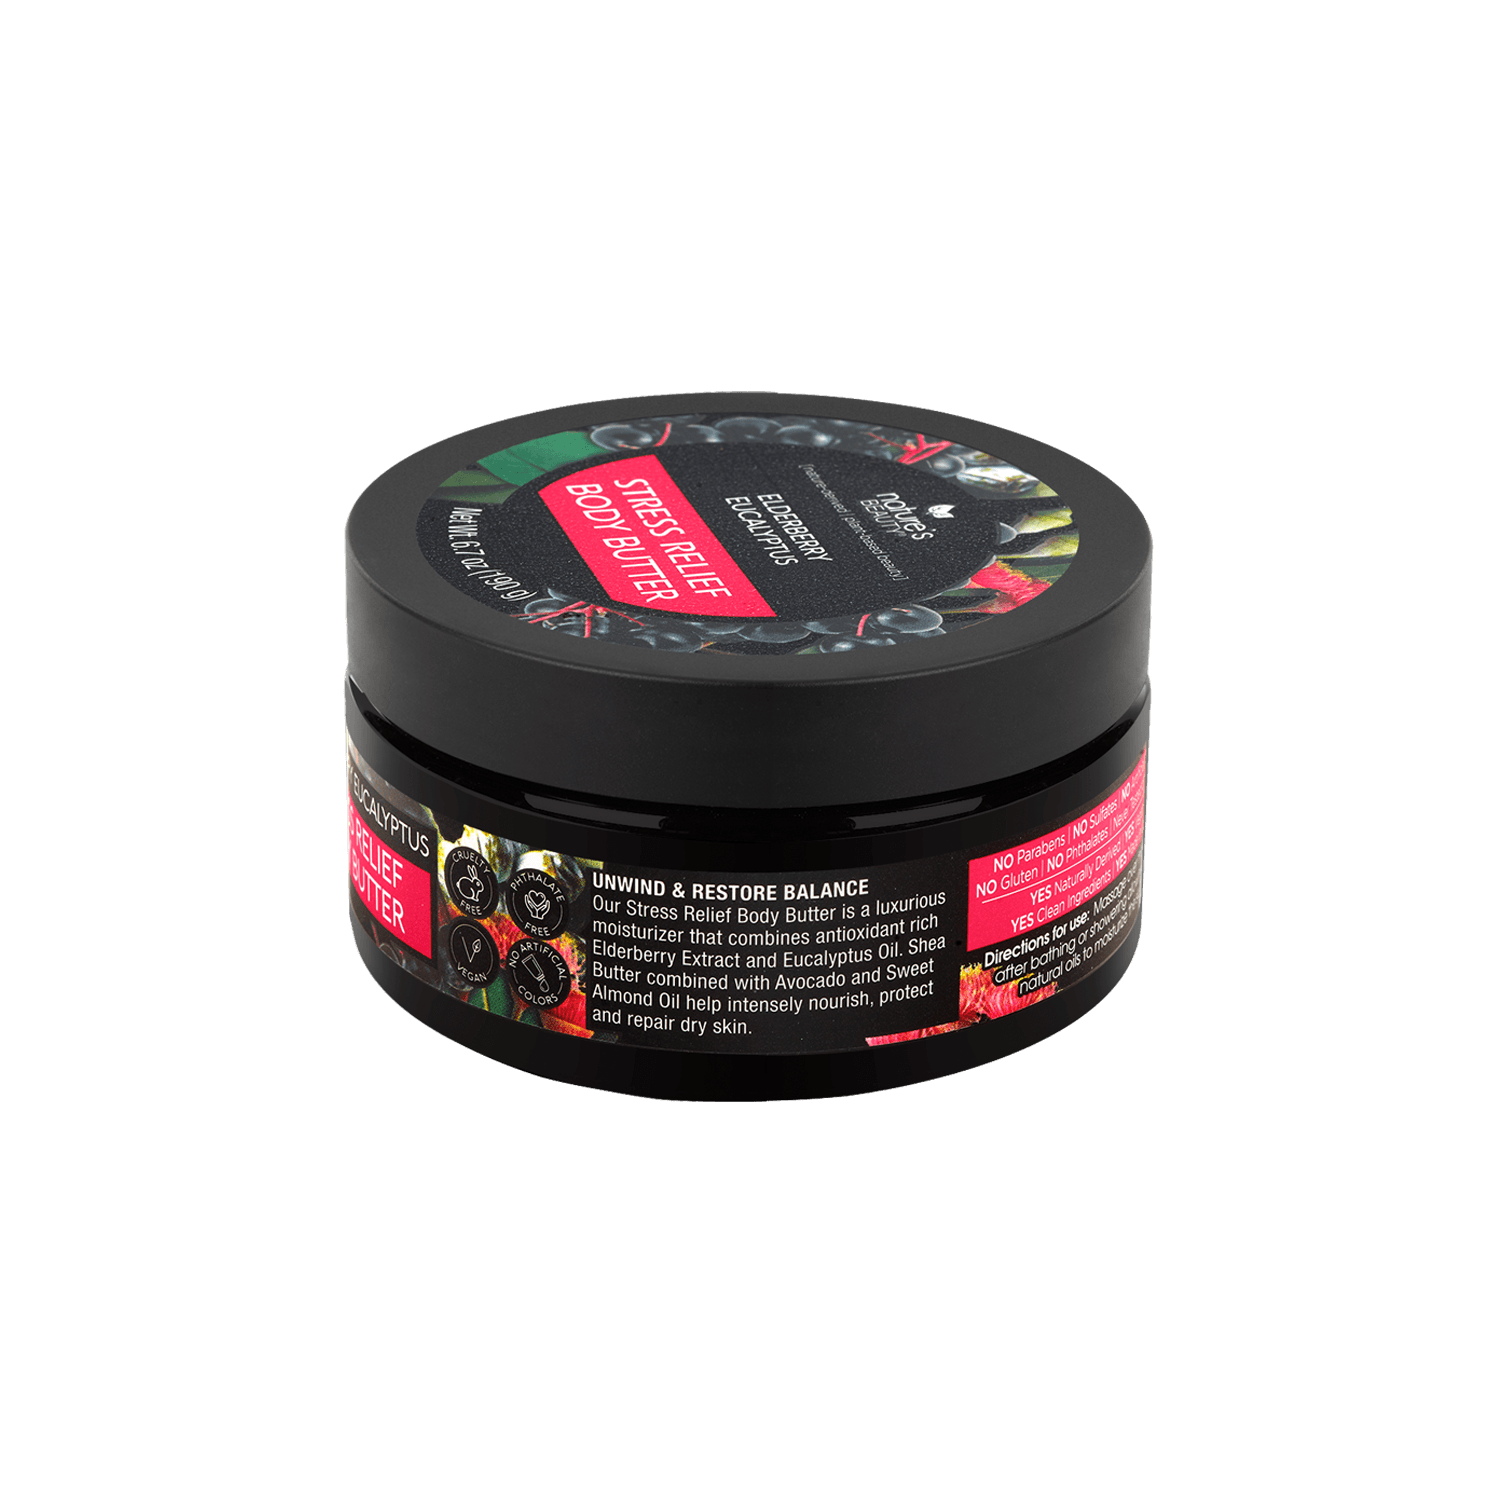 Elderberry Eucalyptus Stress Relief Body Butter